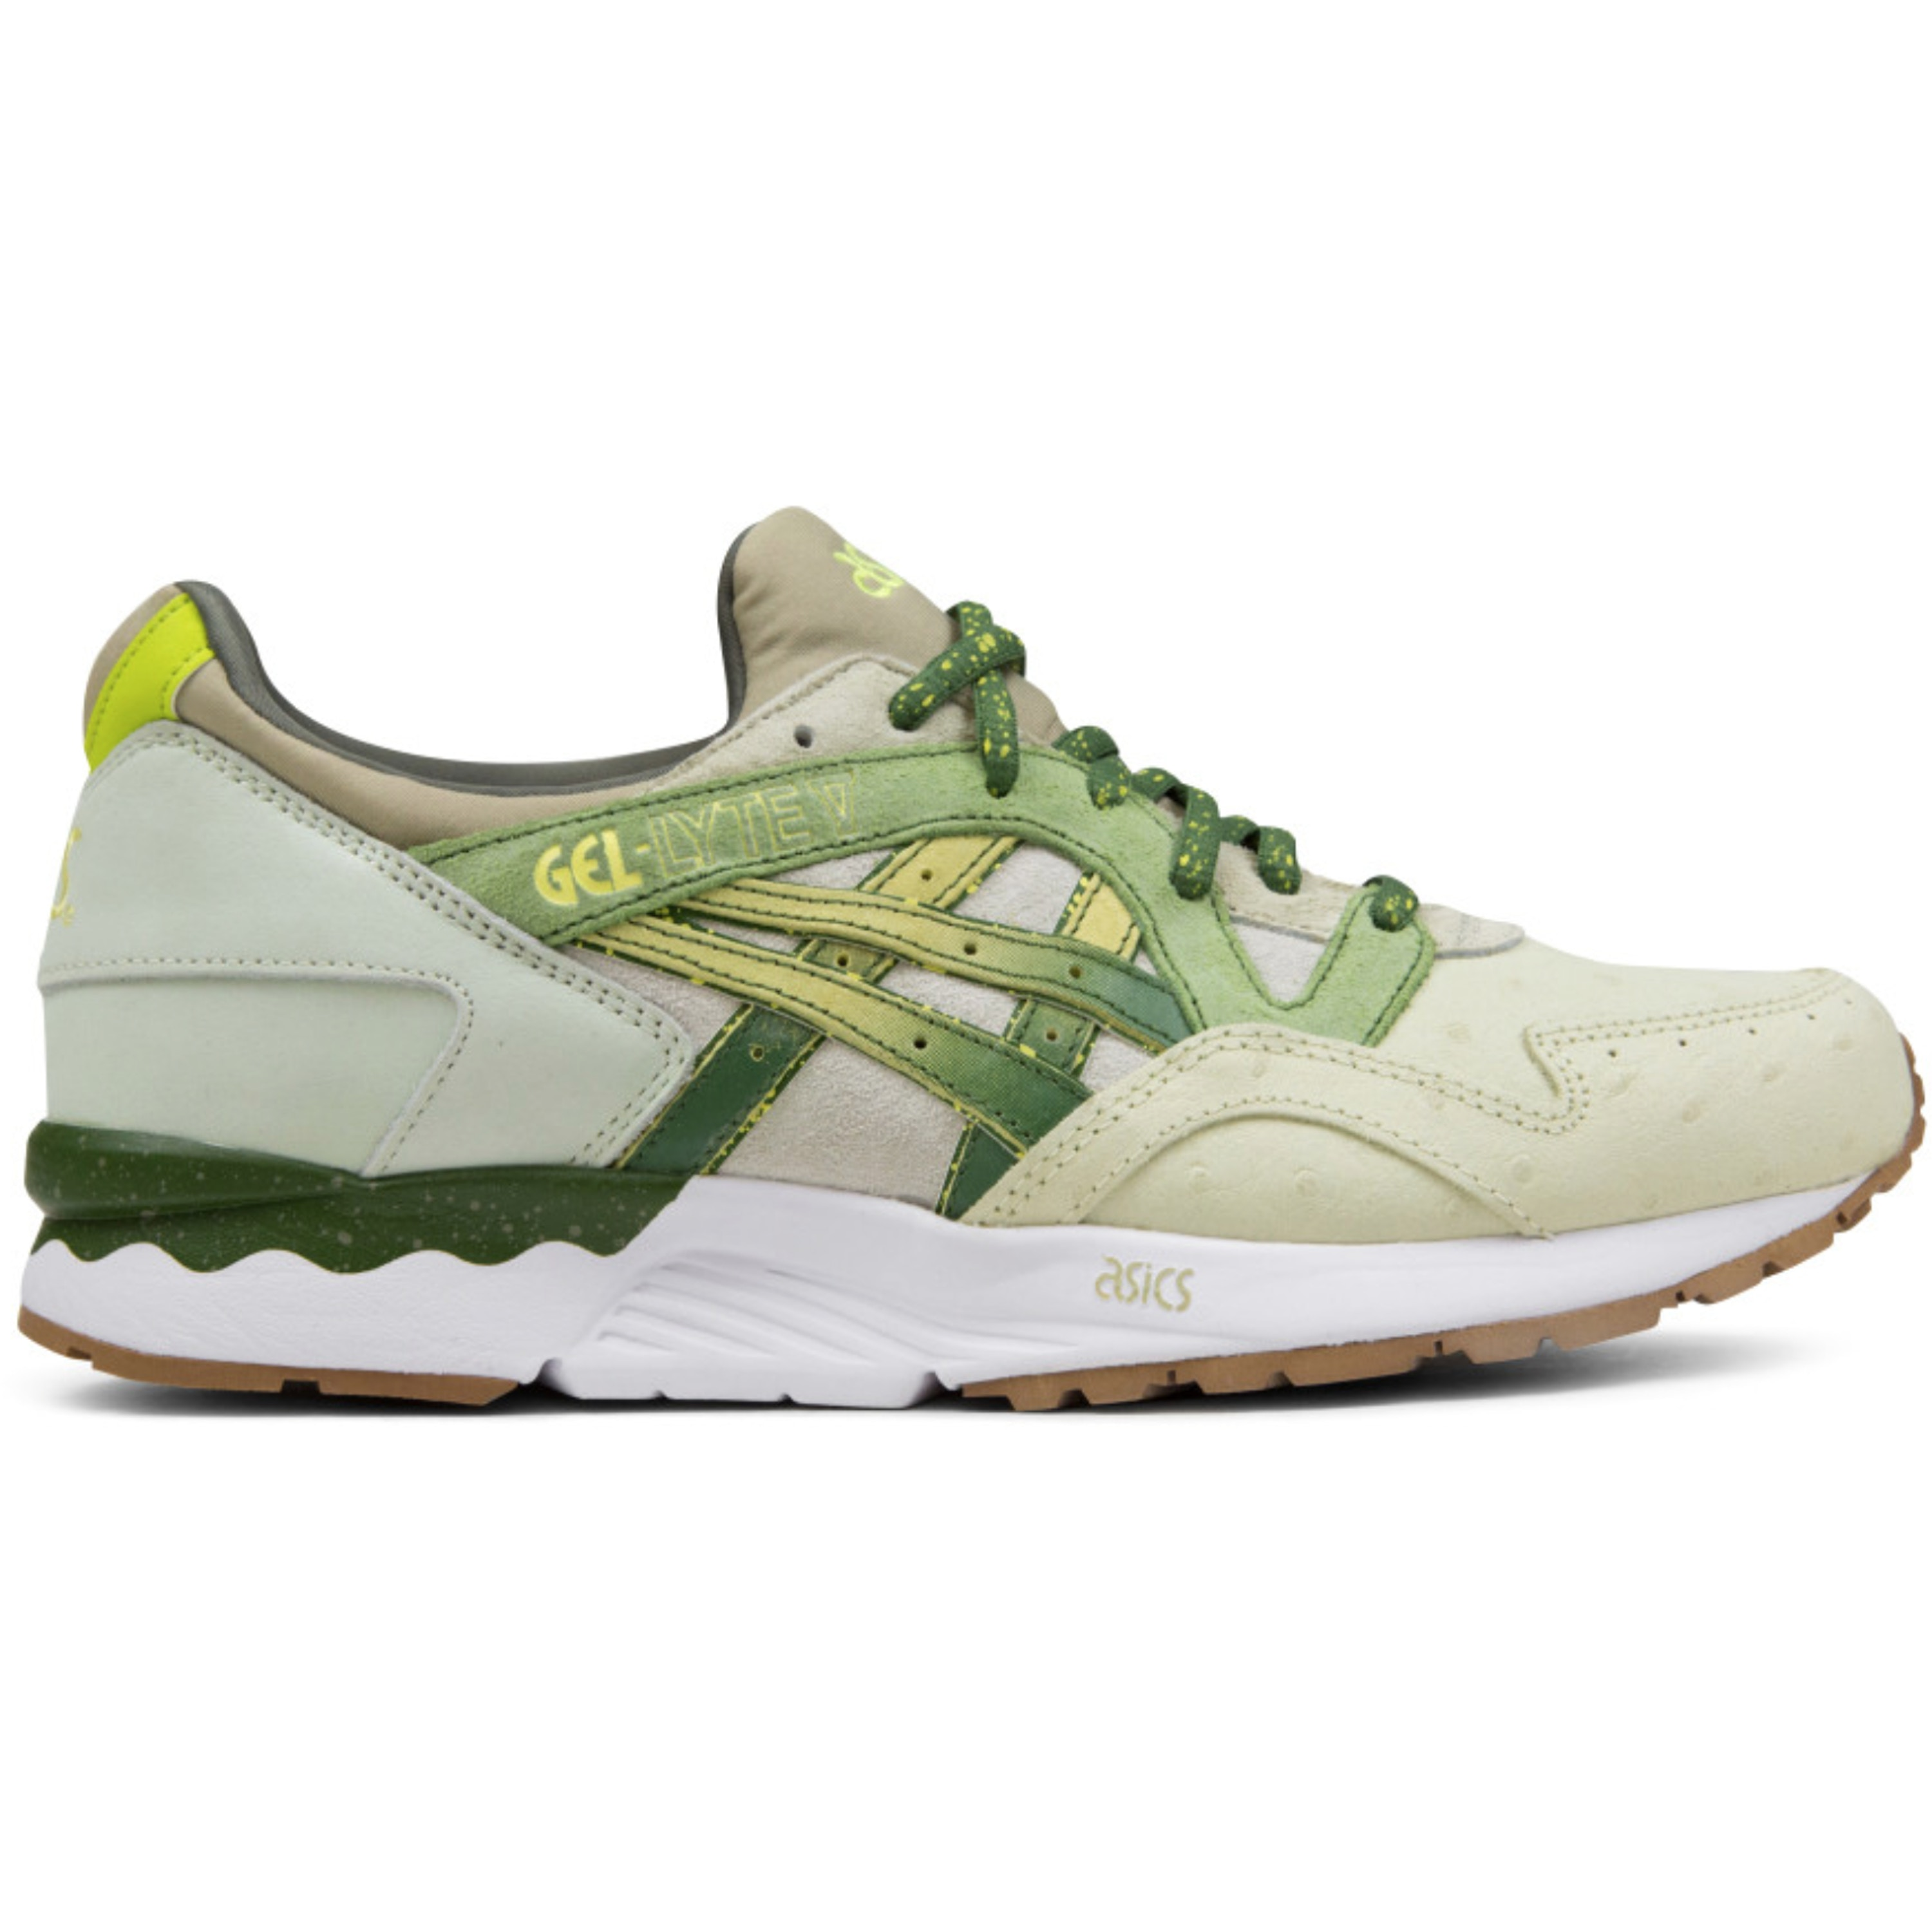 Asics Gel-Lyte V Feature Prickly Pear Cactus (H52HK-1185)